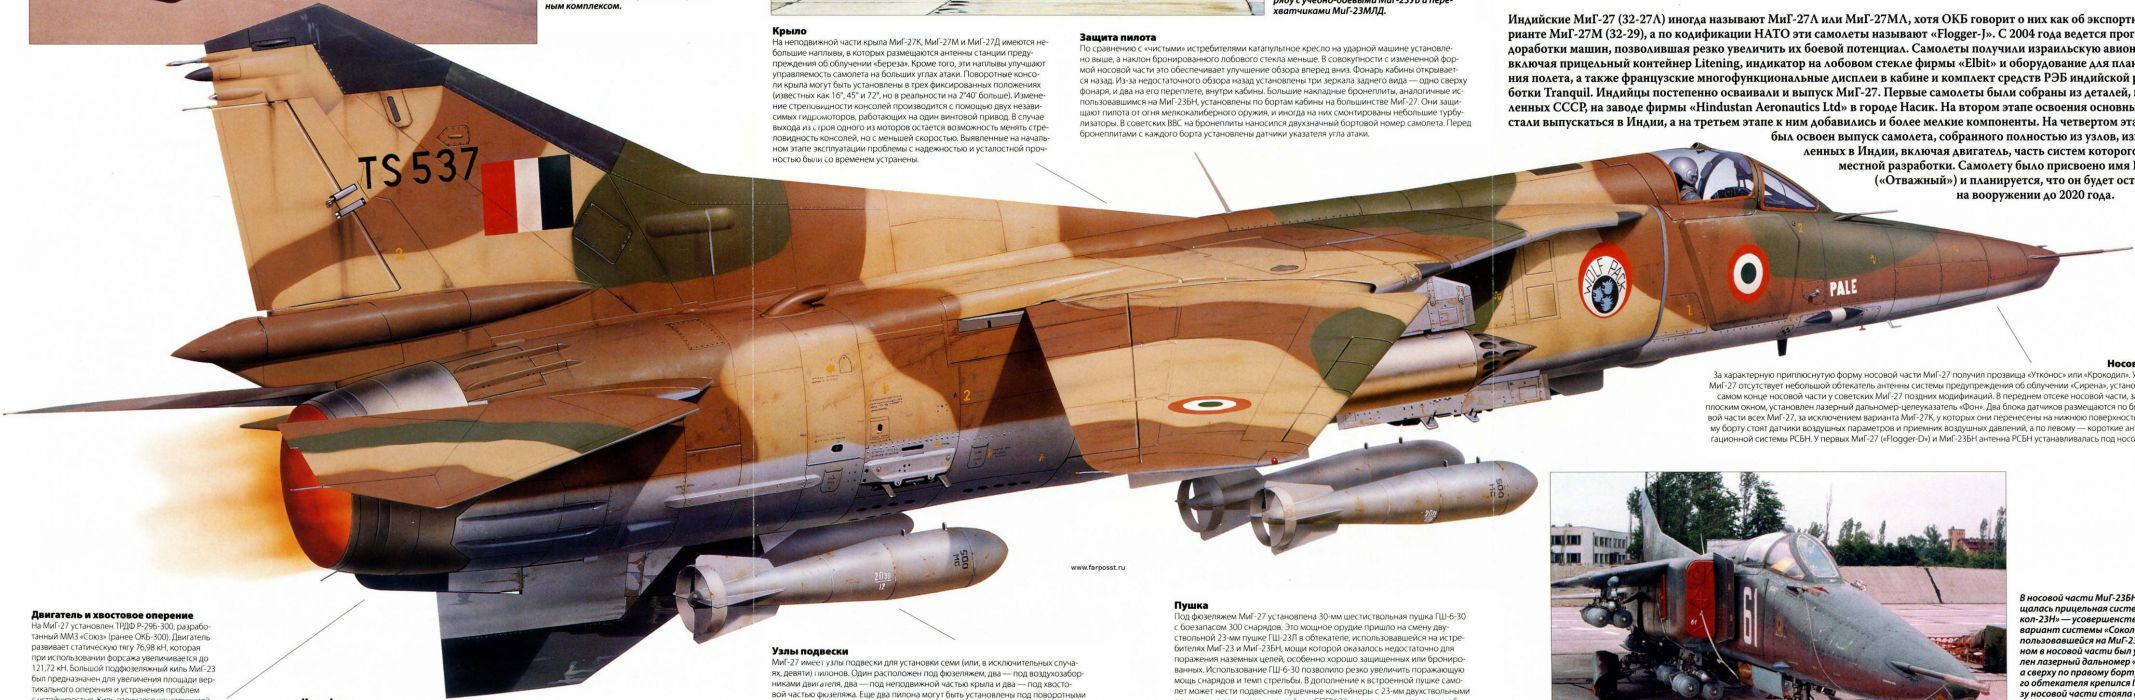 MIG-27 fighter jet russian airplane plane military mig (14) wallpaper